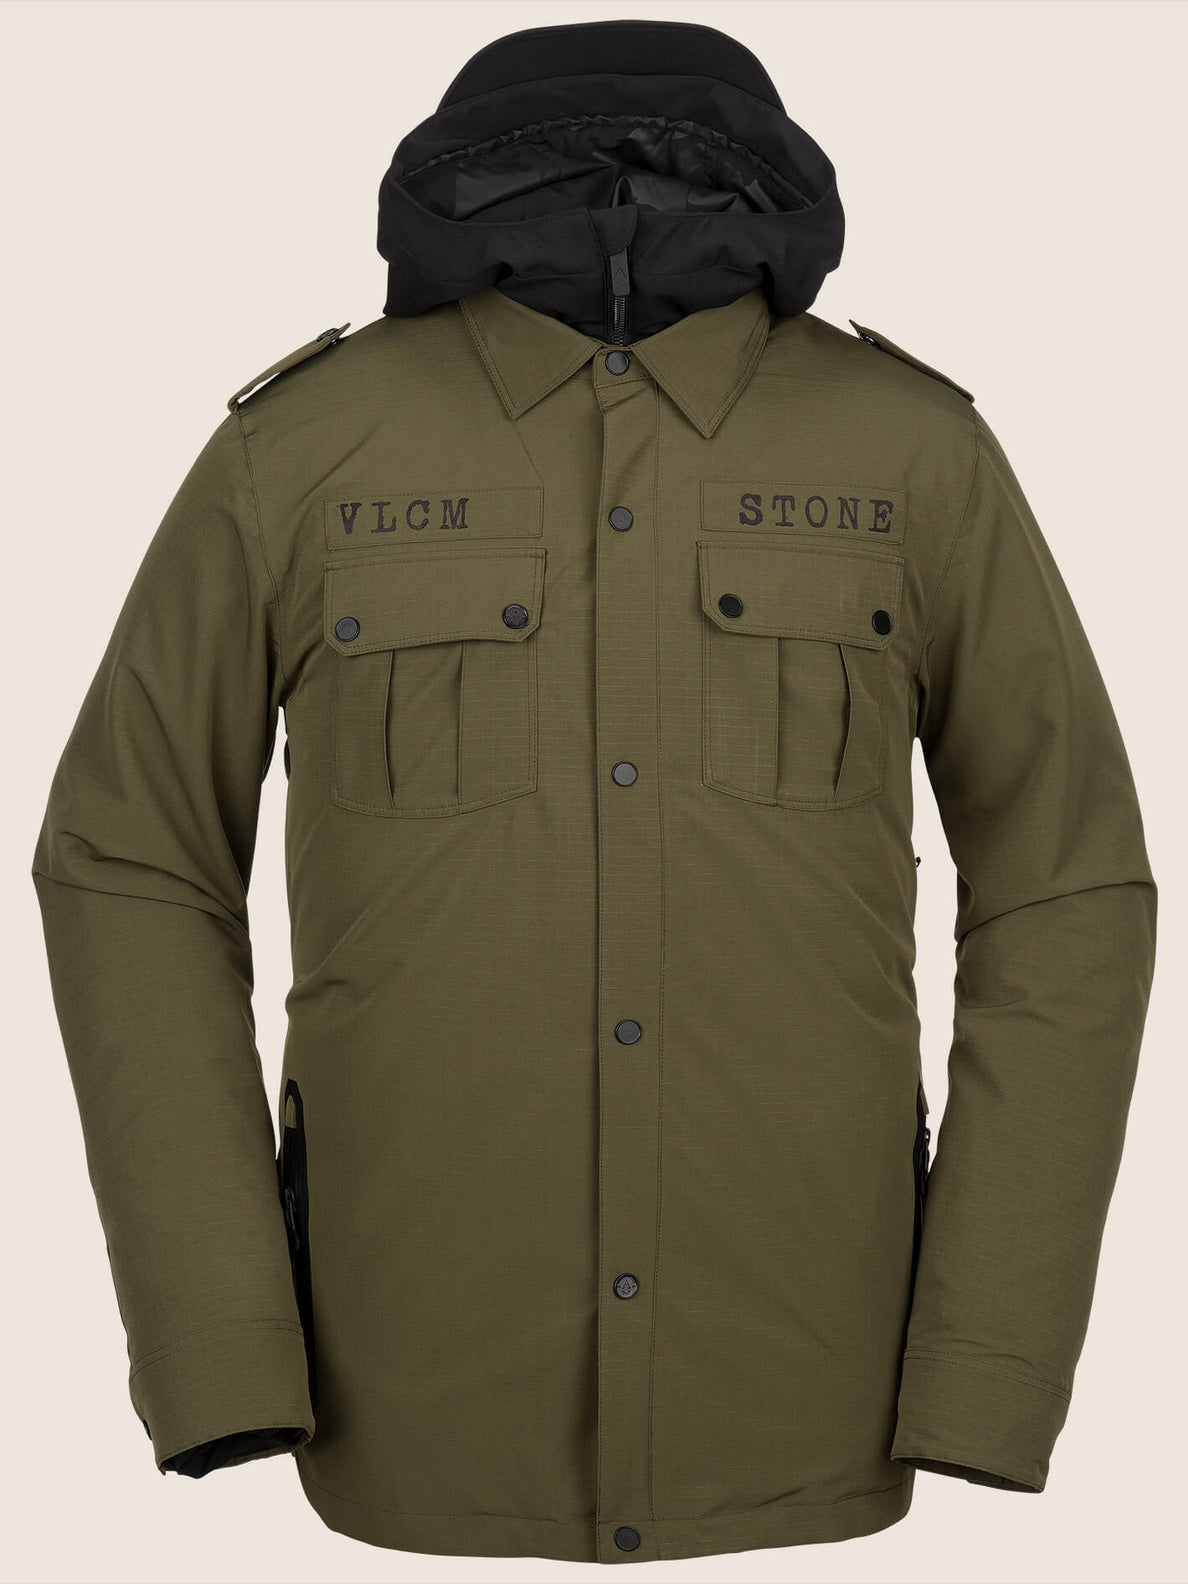 Creedle2stone Jacket In Snow Military, Front View